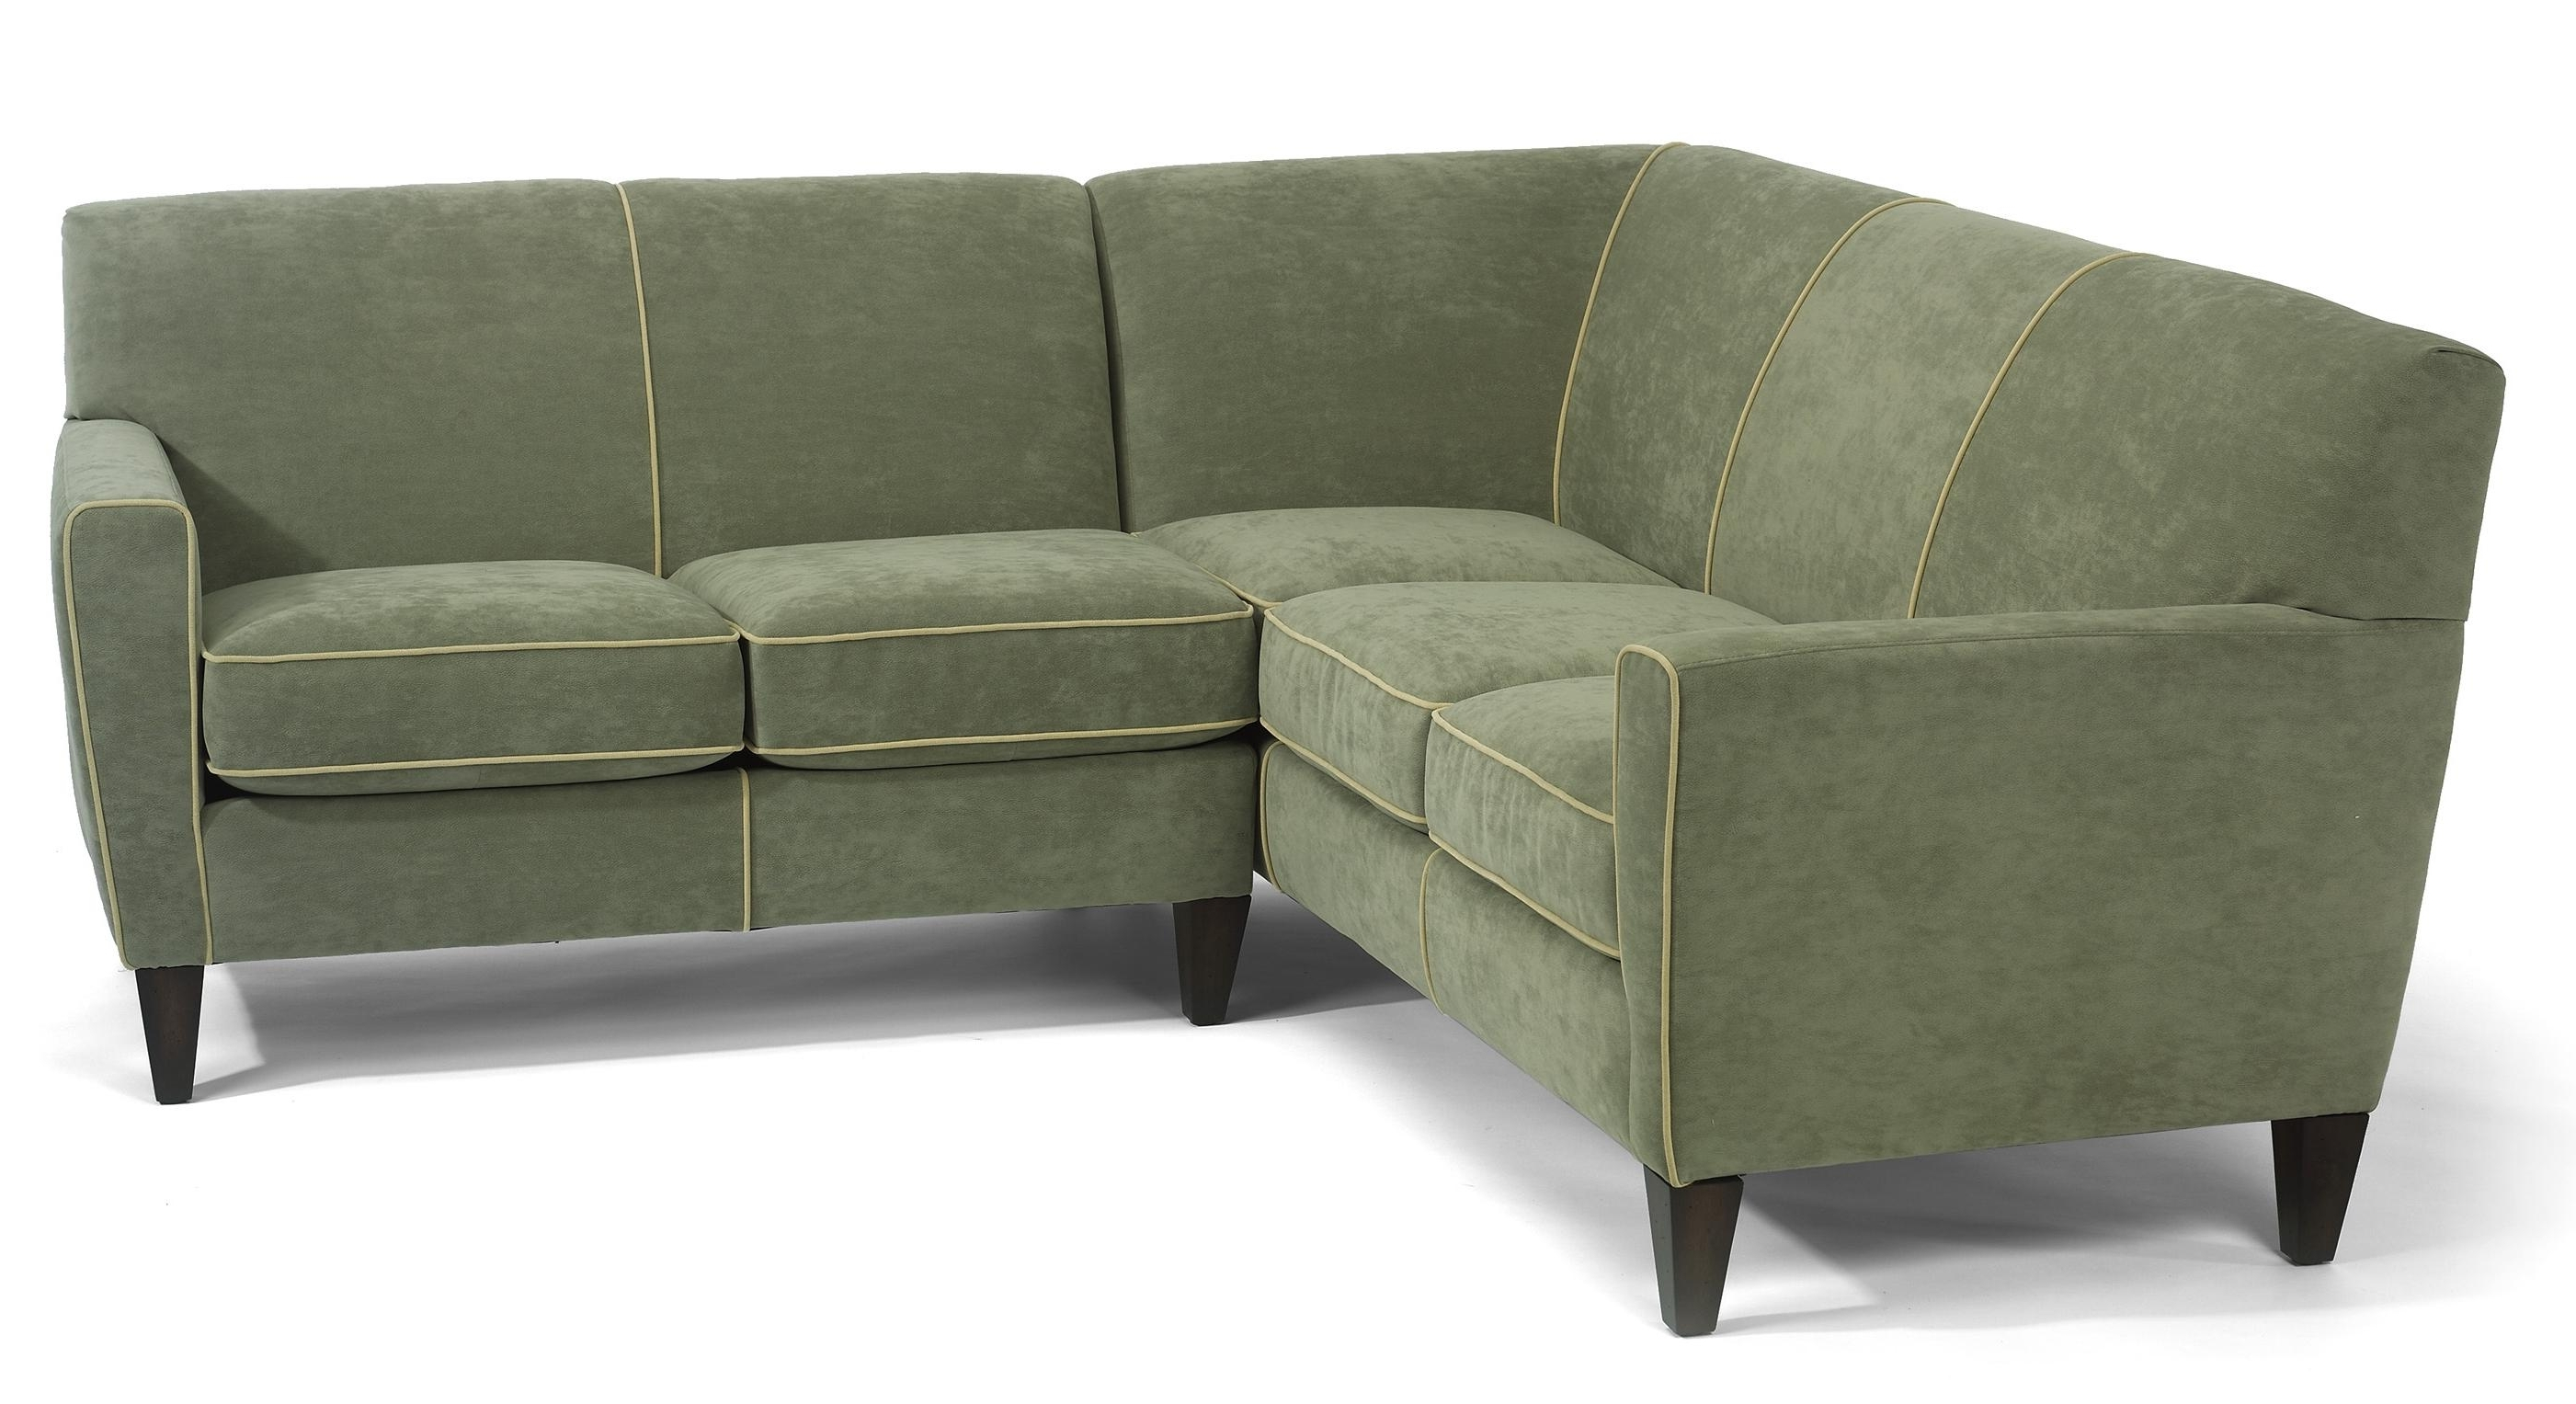 2018 Flexsteel Digby Contemporary L Shape Sectional Sofa – Ahfa – Sofa In Visalia Ca Sectional Sofas (View 18 of 20)